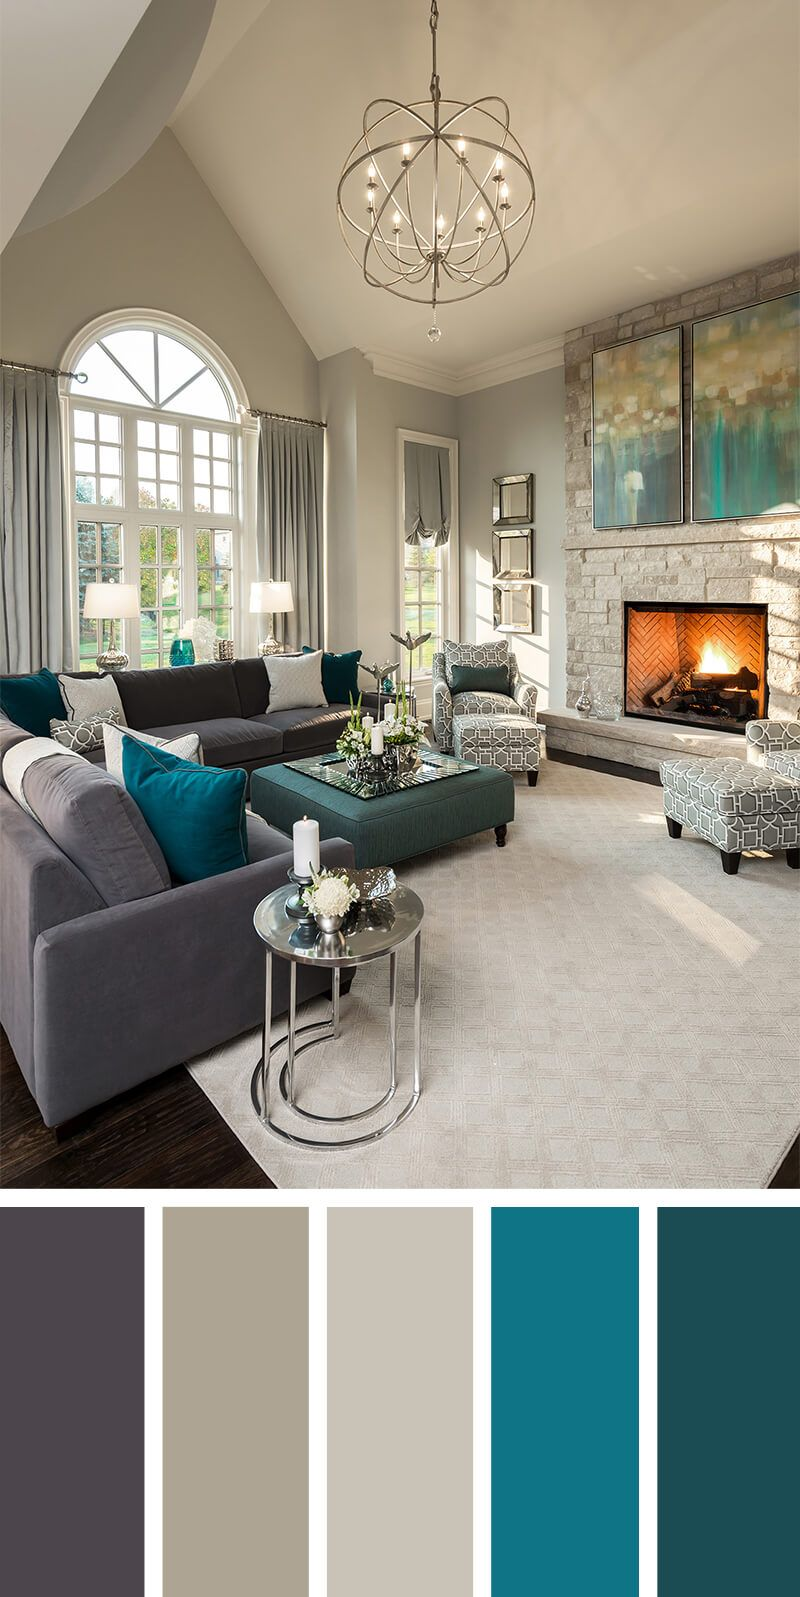 Living room color scheme ideas can help you to create a living room that's worthy of showing up in a home décor magazine. Find the best designs! #livingroomideas